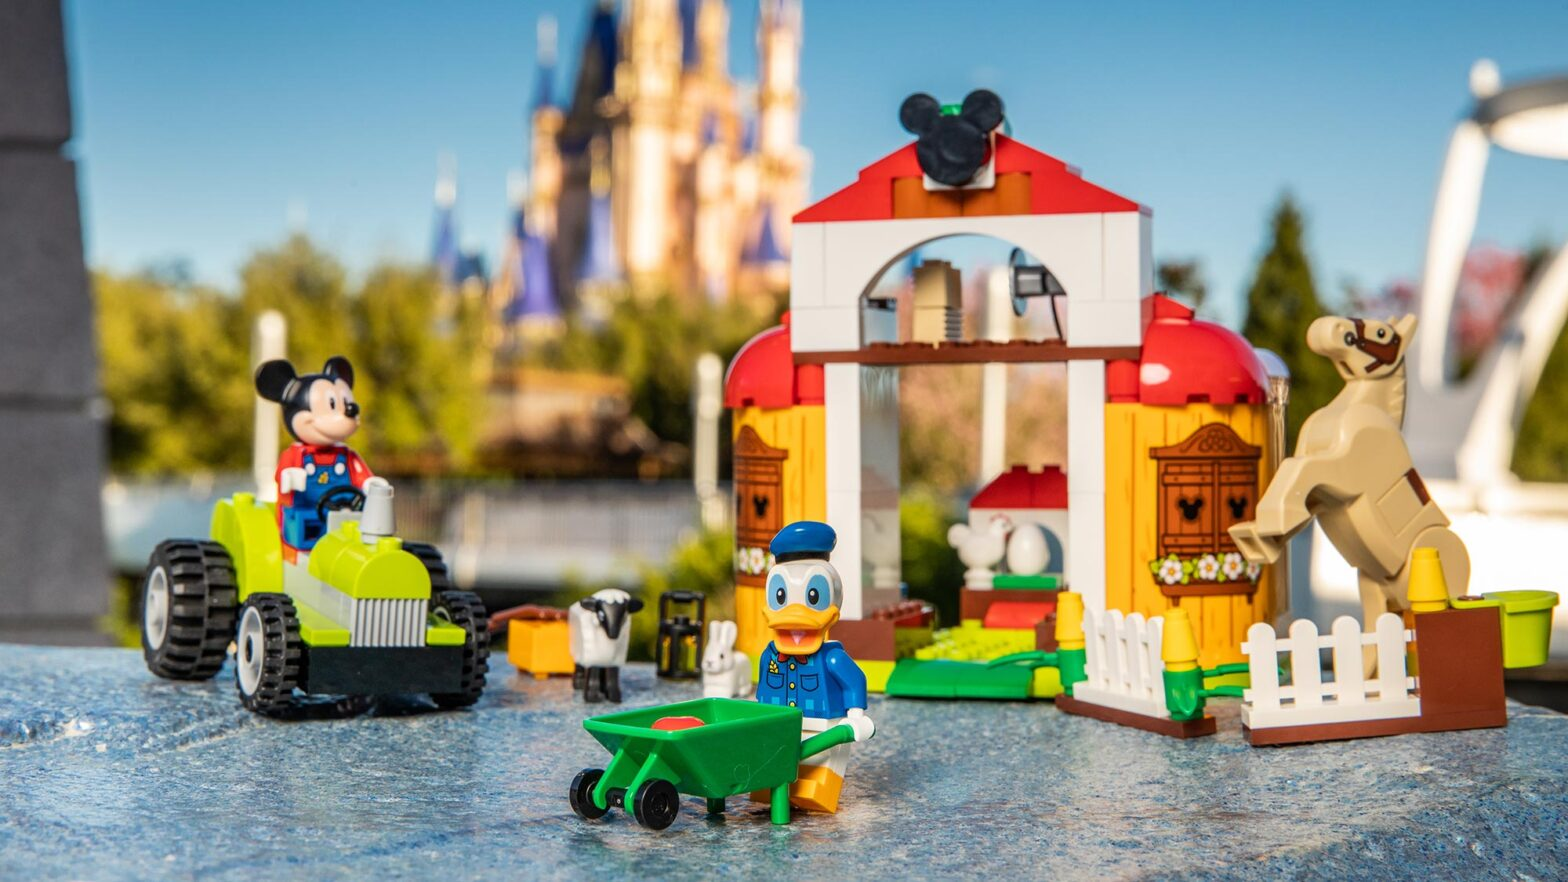 LEGO Disney Mickey and Friends for Preschoolers